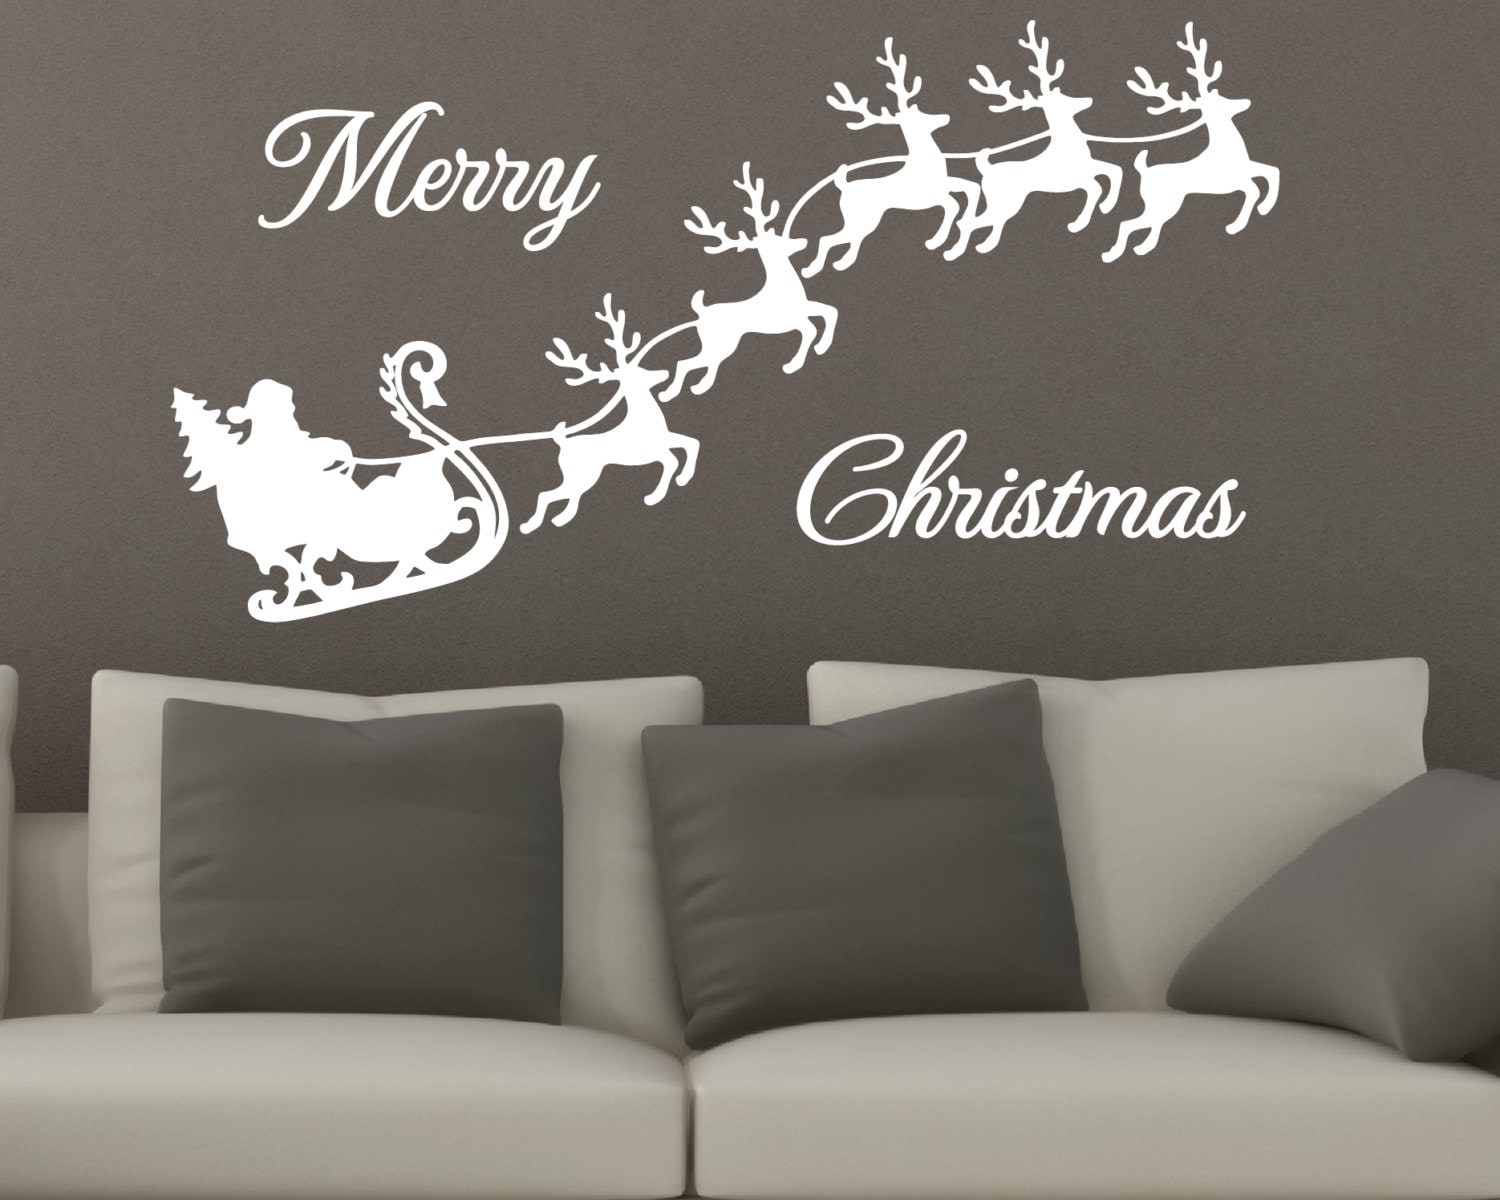 Christmas Decals Santa Sleigh Decal Holiday Decals